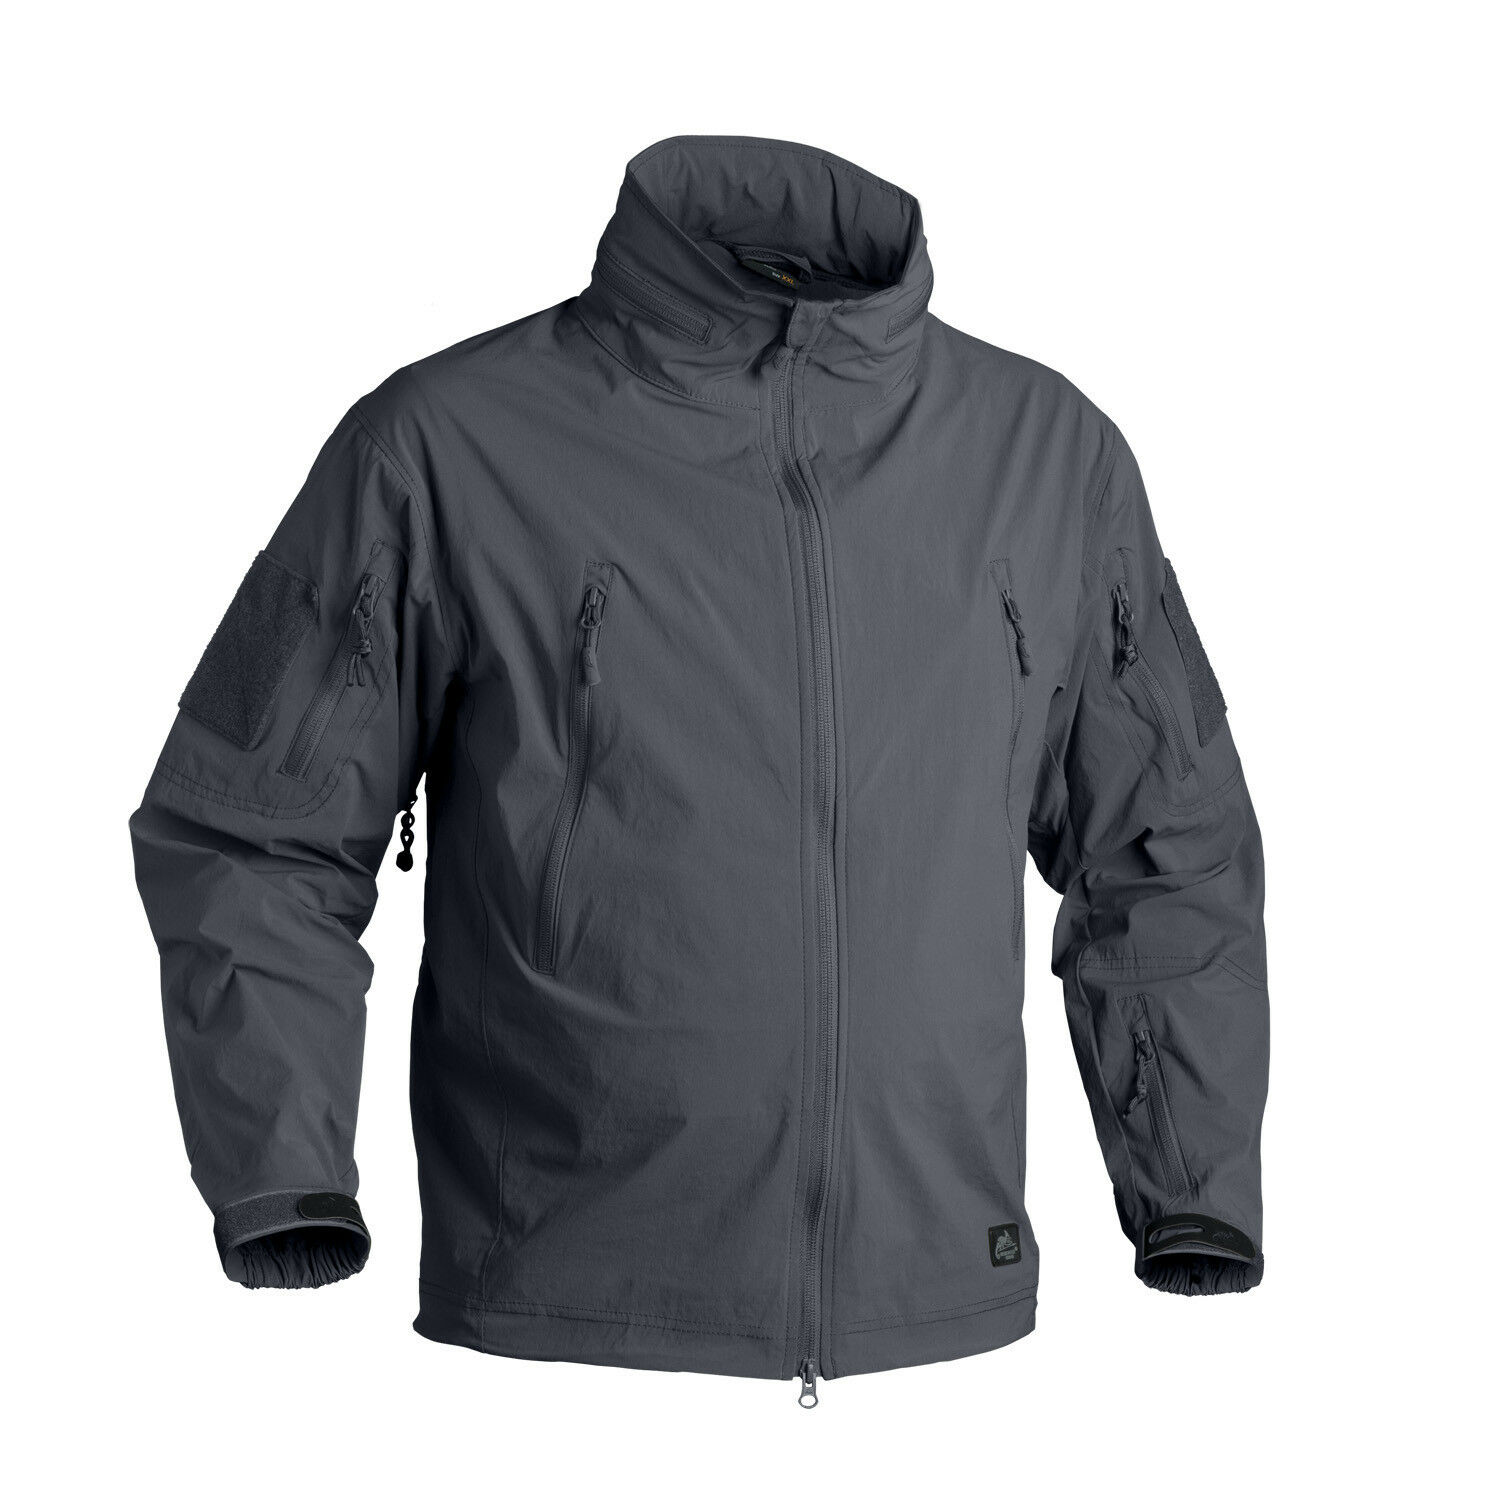 HELIKON Softshell tex stormstretch ® outdoor ocio Softshell HELIKON chaqueta Shadow Grey L/large fff59c